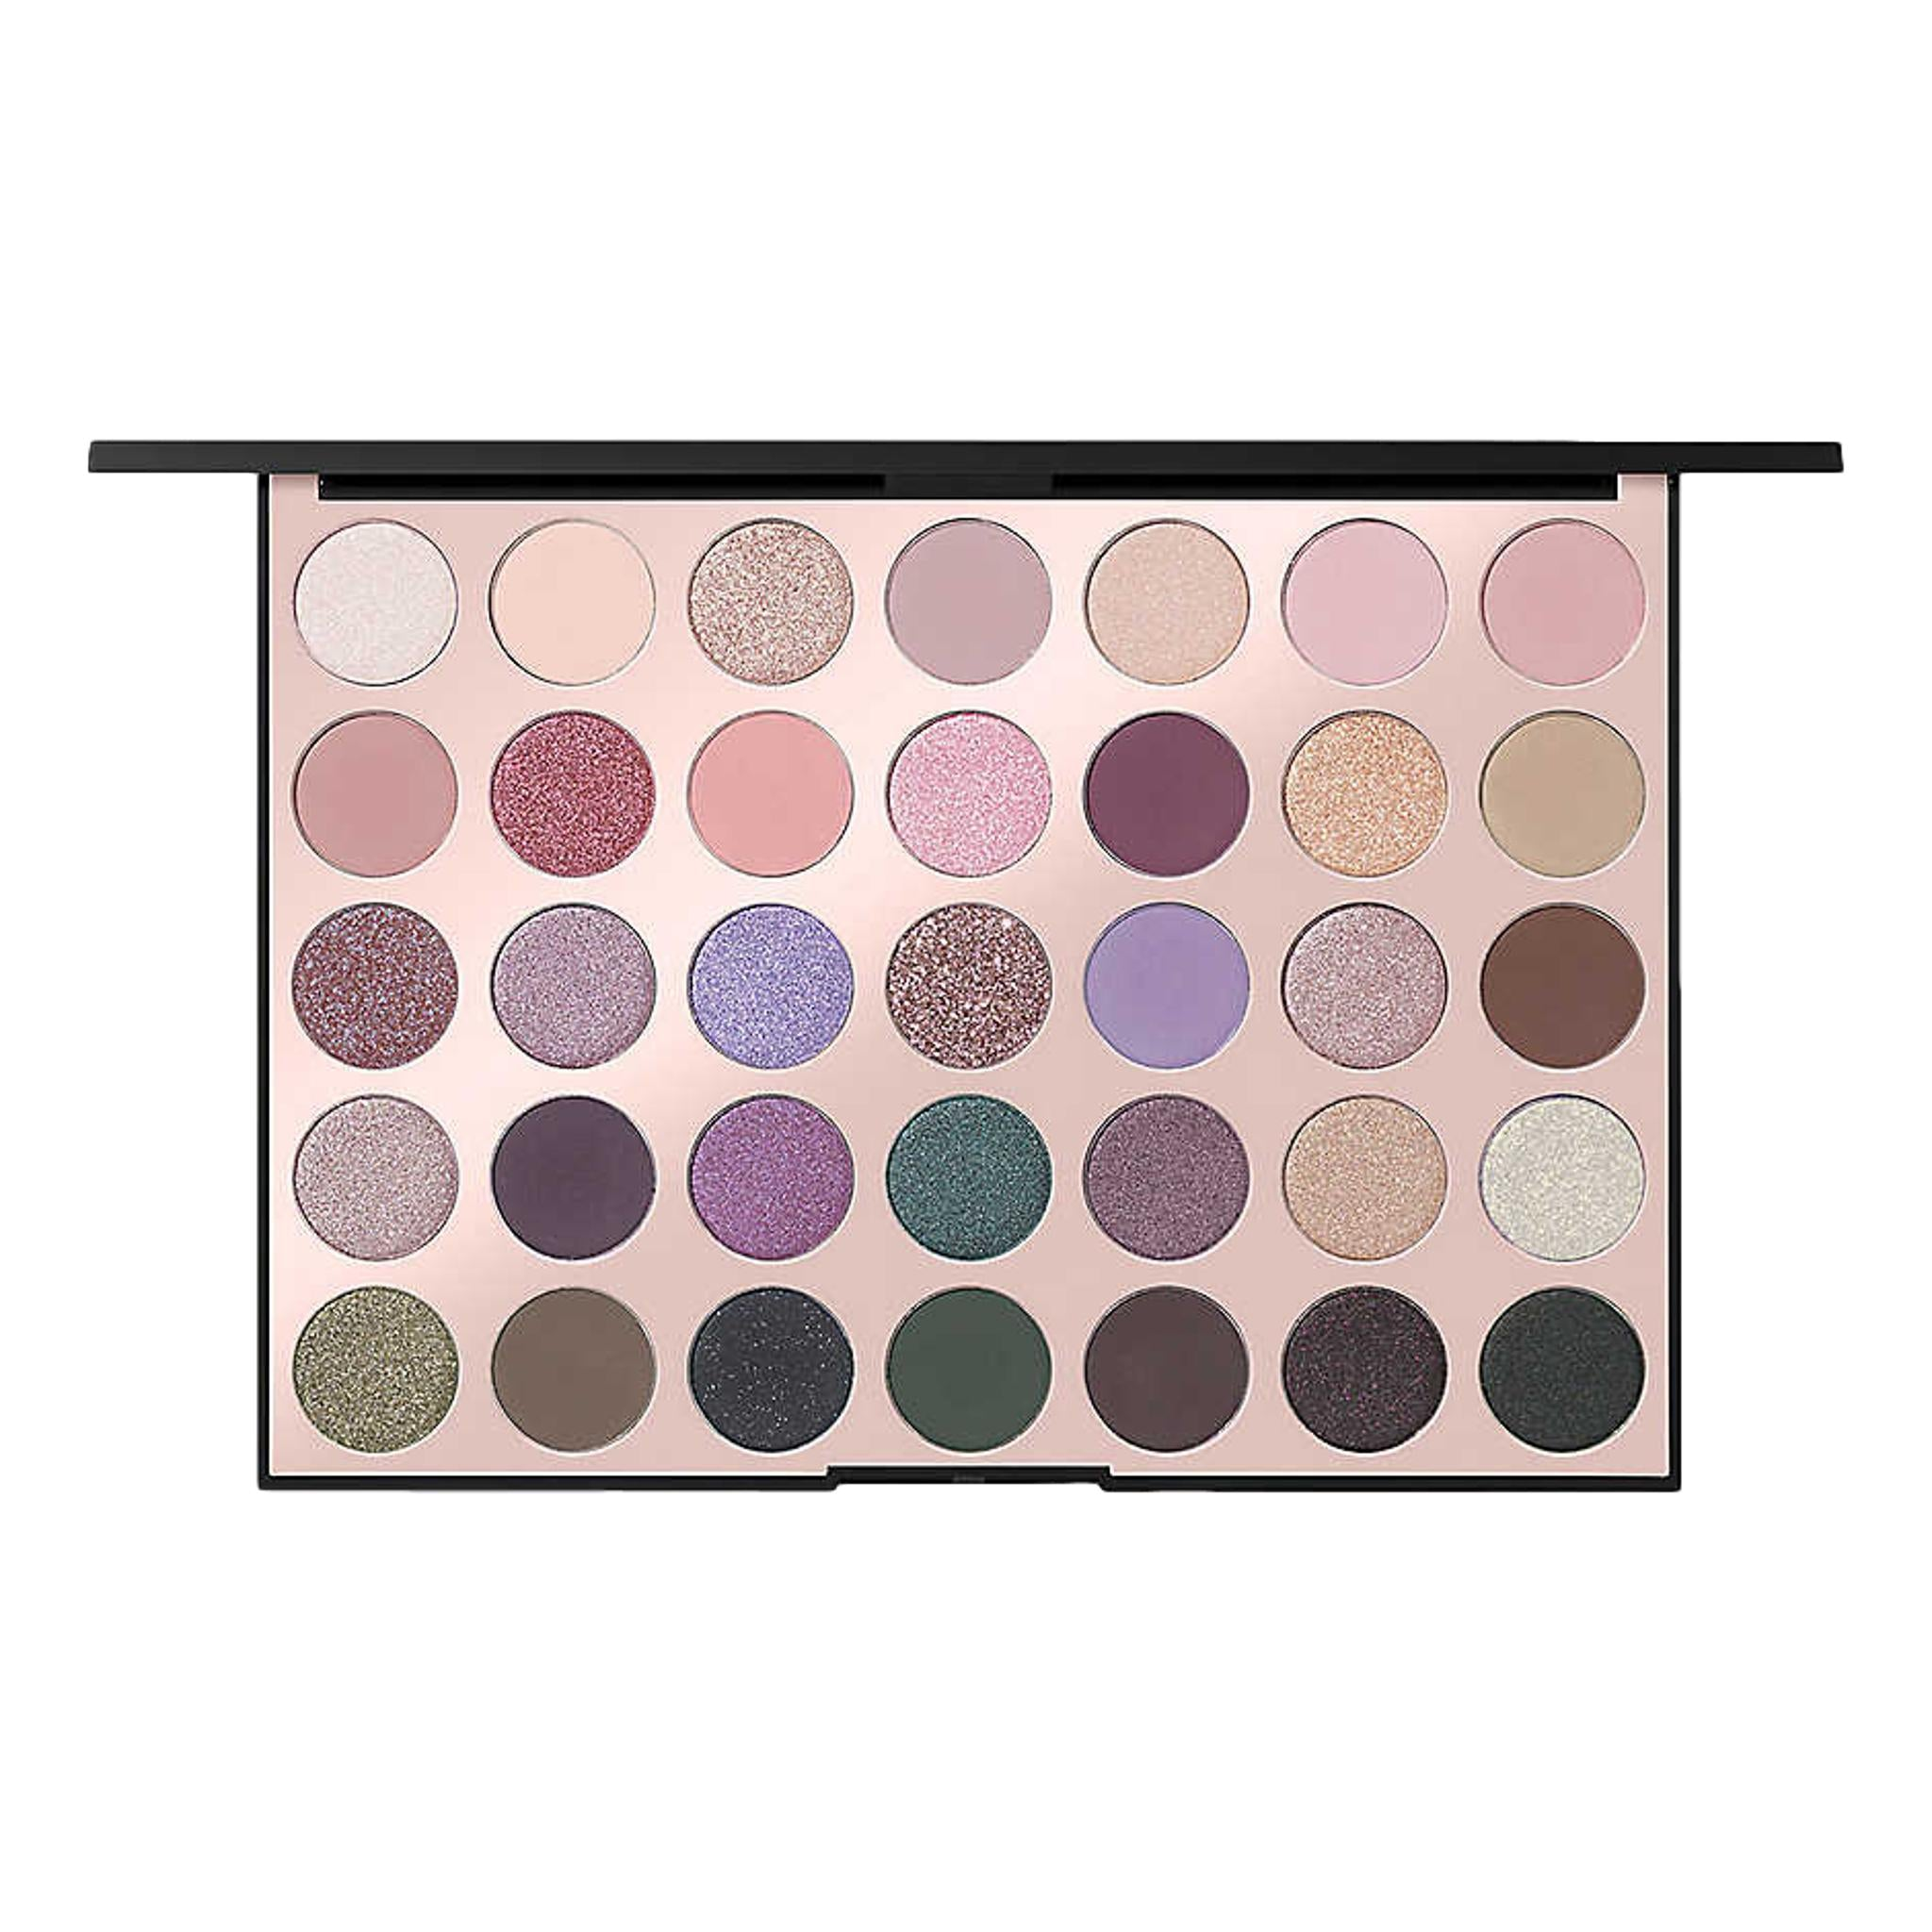 Morphe Everyday Chic Artistry Eyeshadow Palette, 56.2g, eyeshadow palette, London Loves Beauty